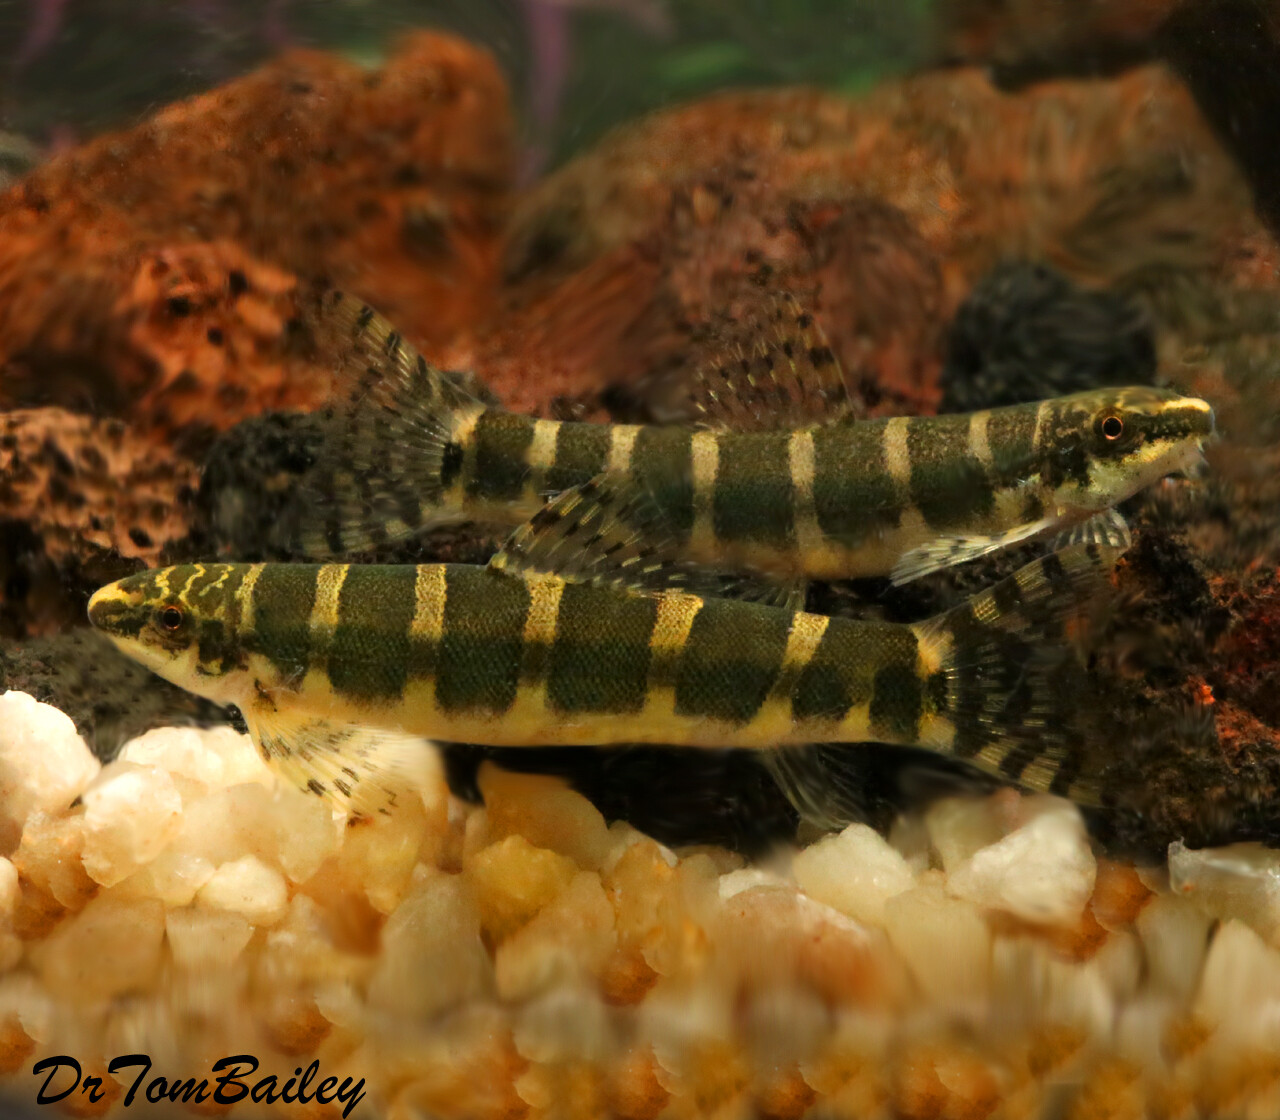 Premium New and Rare, WILD Serpent Loach, Serpenticobitis octozona